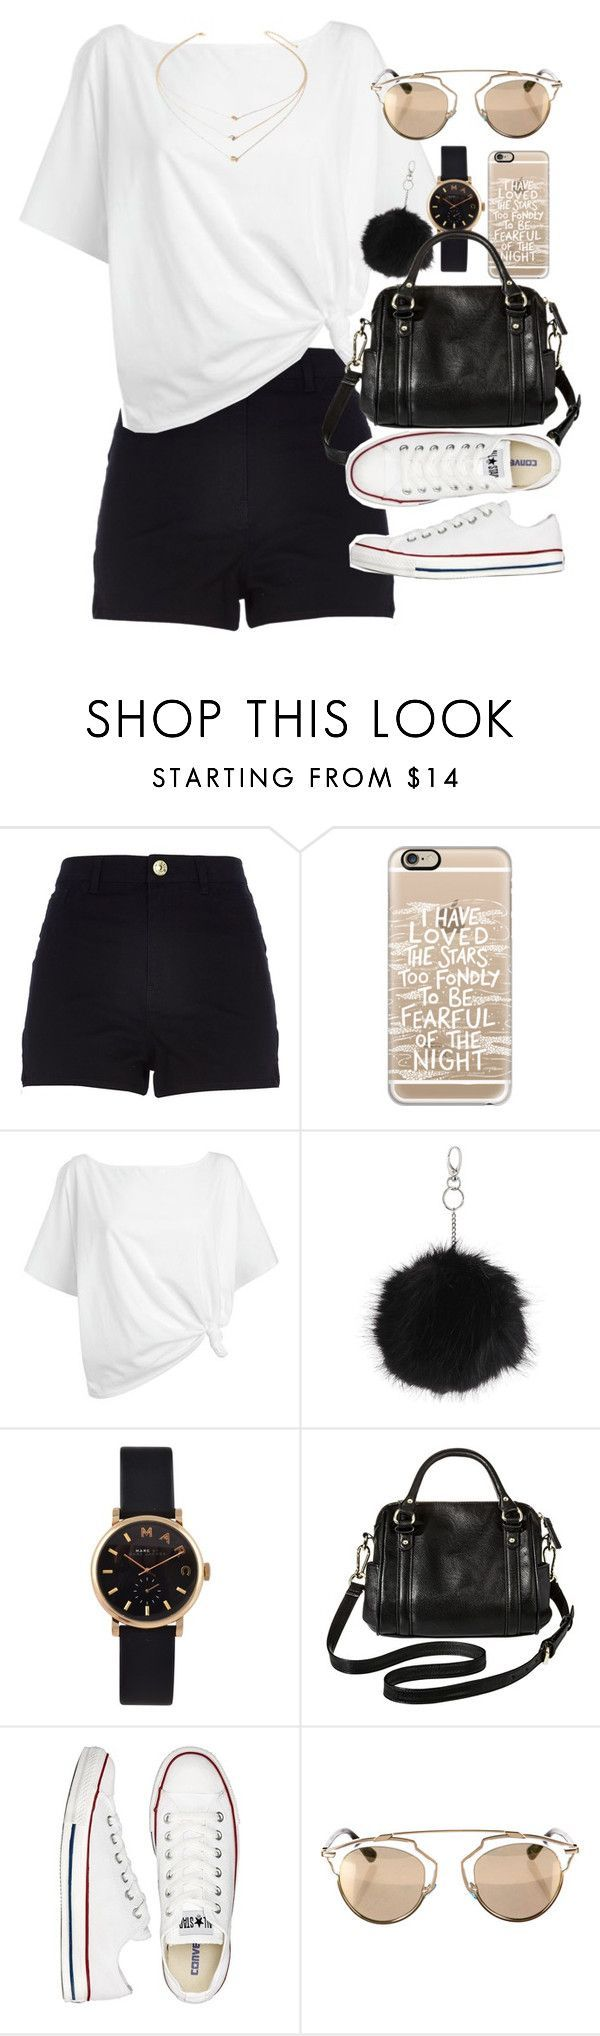 """Outfit for summer with a white top and black shorts"" by ferned ❤ liked on Polyvore featuring Casetify, Red Herring, Topshop, Marc by Marc Jacobs, Merona, Converse, Christian Dior, Forever 21, women's clothing and women - online shop womens clothing, free womens clothing, clothing stores womens"